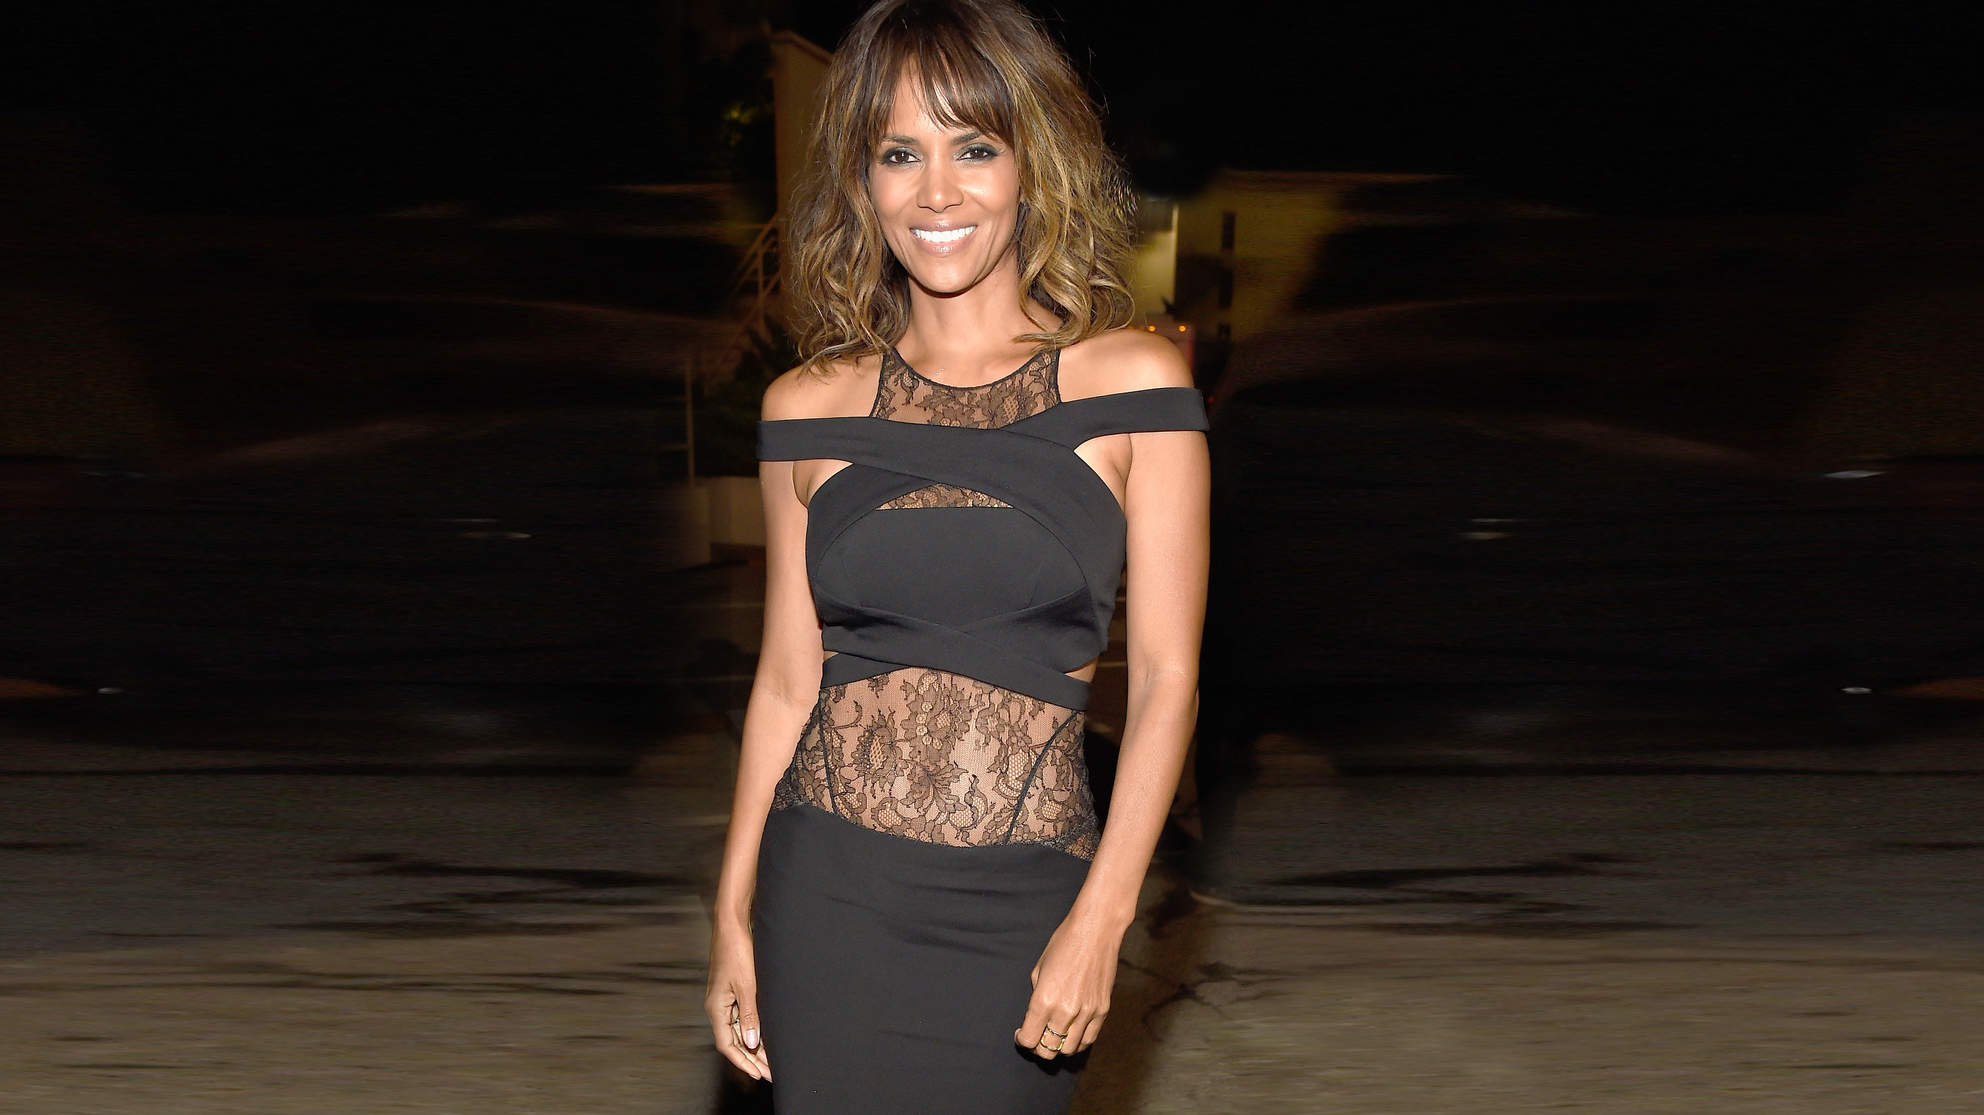 Halle Berry Posts Cheeky Instagram Amid Pregnancy Rumors: 'Can a Girl Have Some Steak and Fries?'